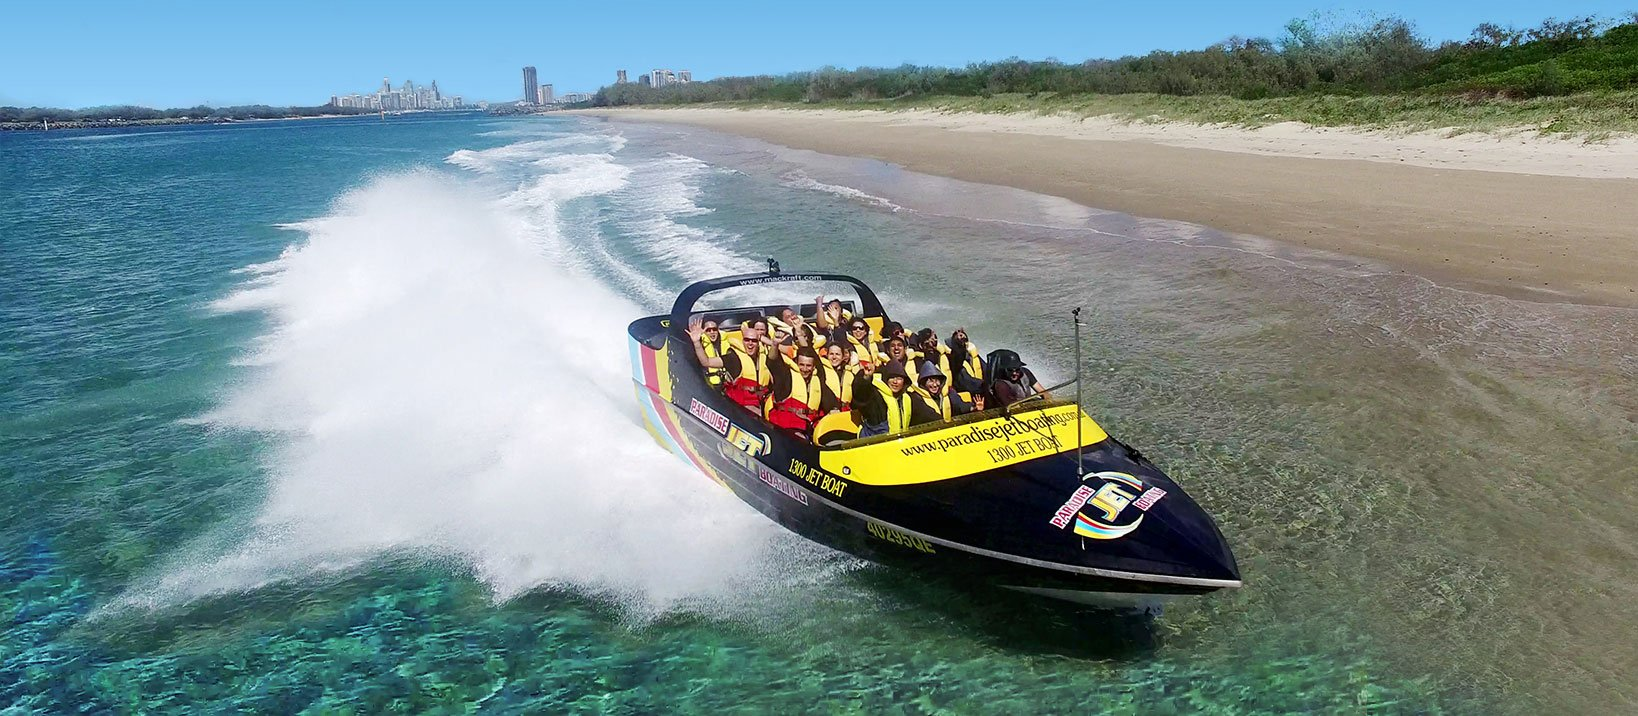 Jet boat on Gold Coast Australia full of customers on blue water